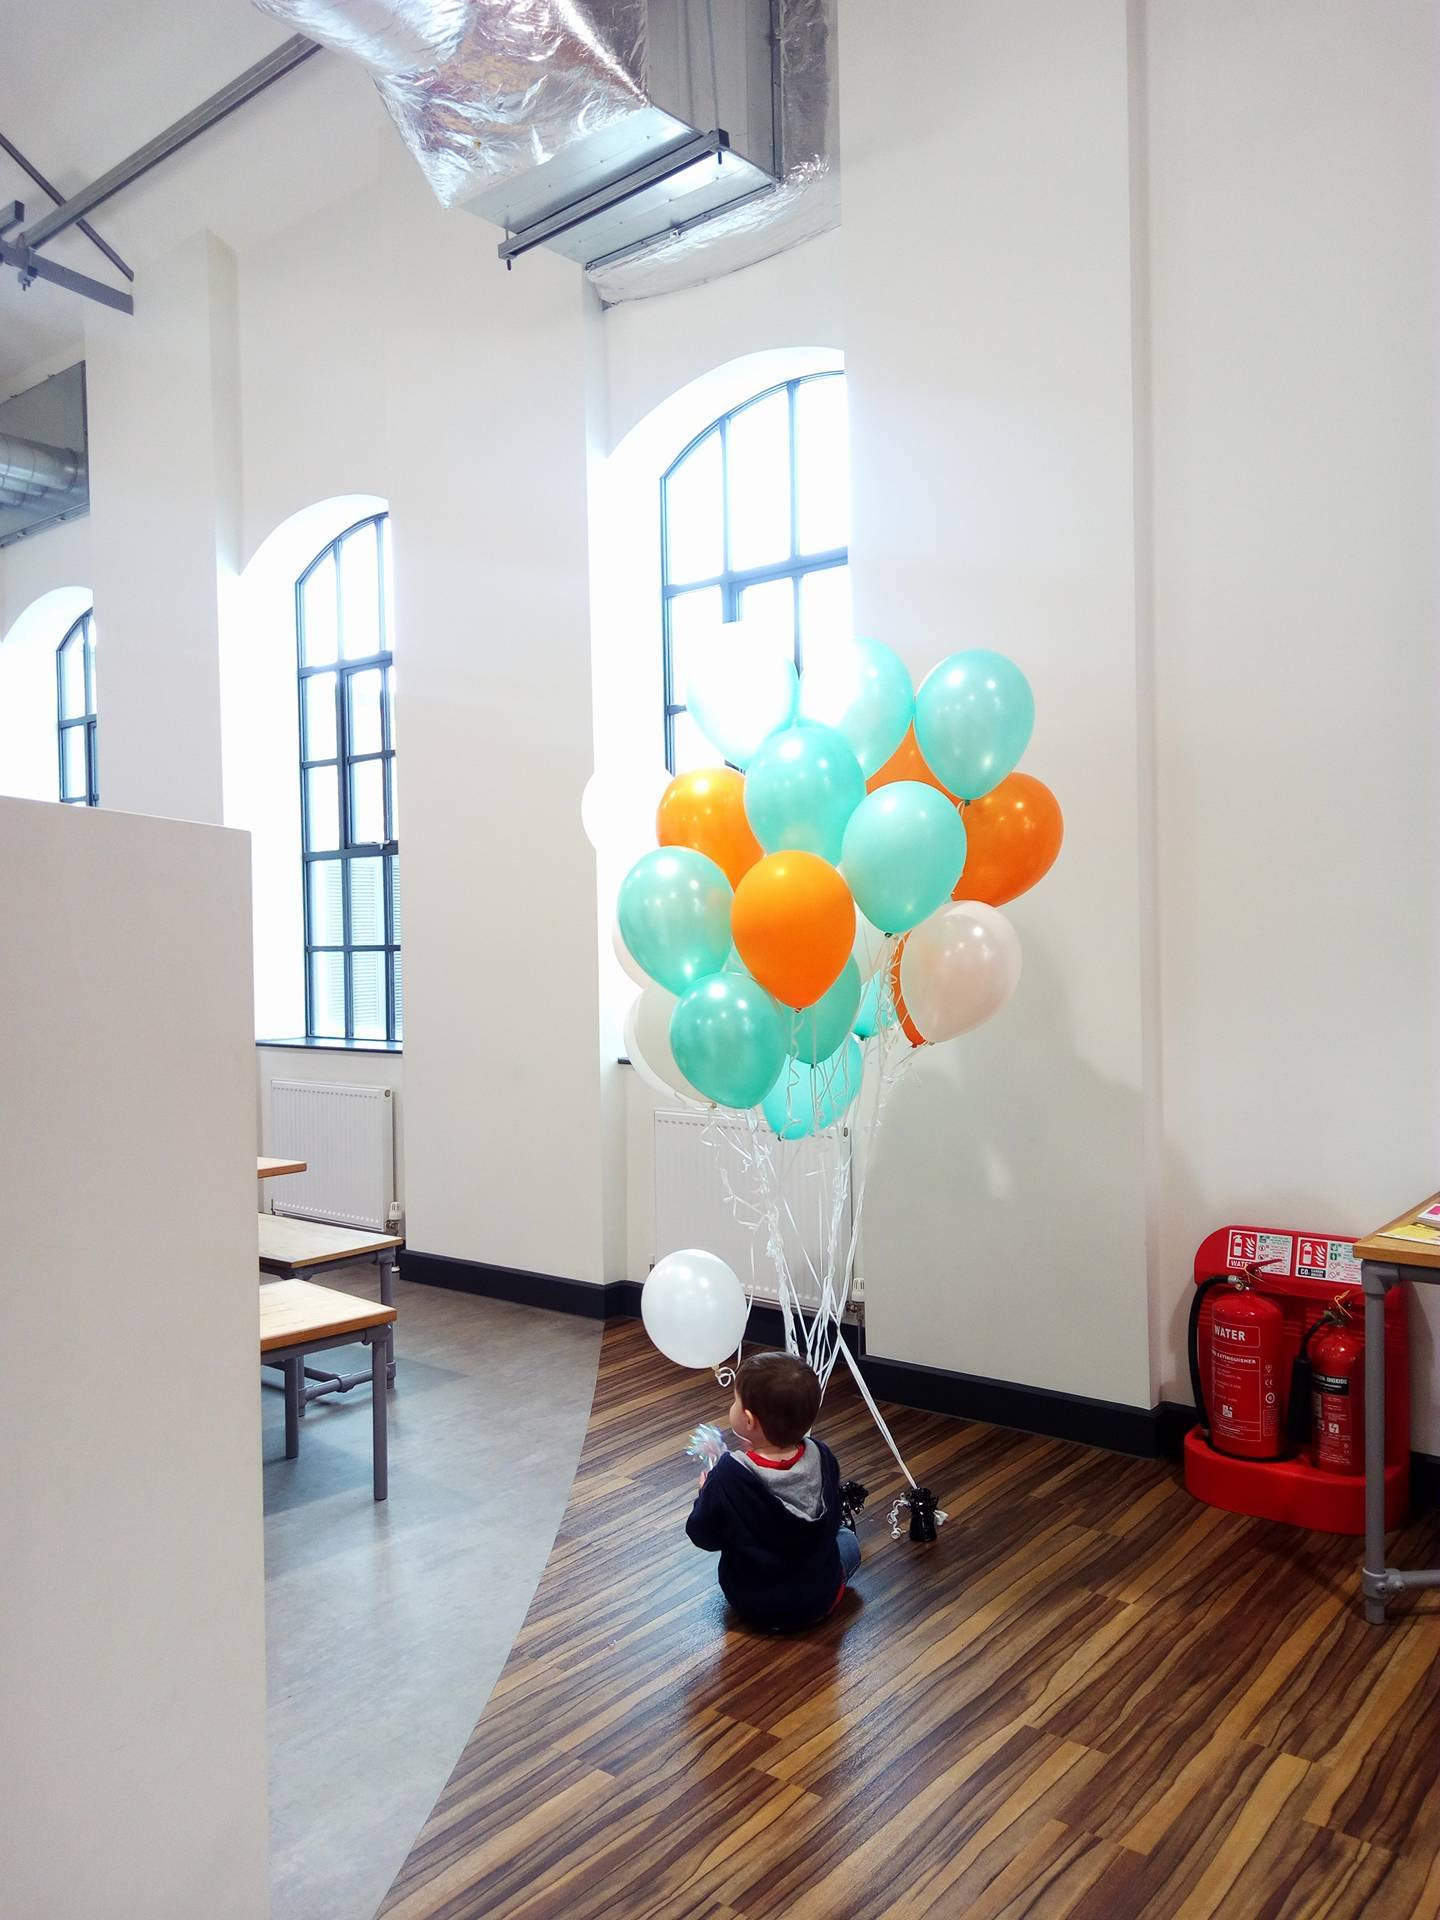 Feeling the post-festival blues? We luckily had some little creatives today at #iC4C to lift our spirits & play w/ the #nottdance balloons! https://t.co/1fkhJHzWWy